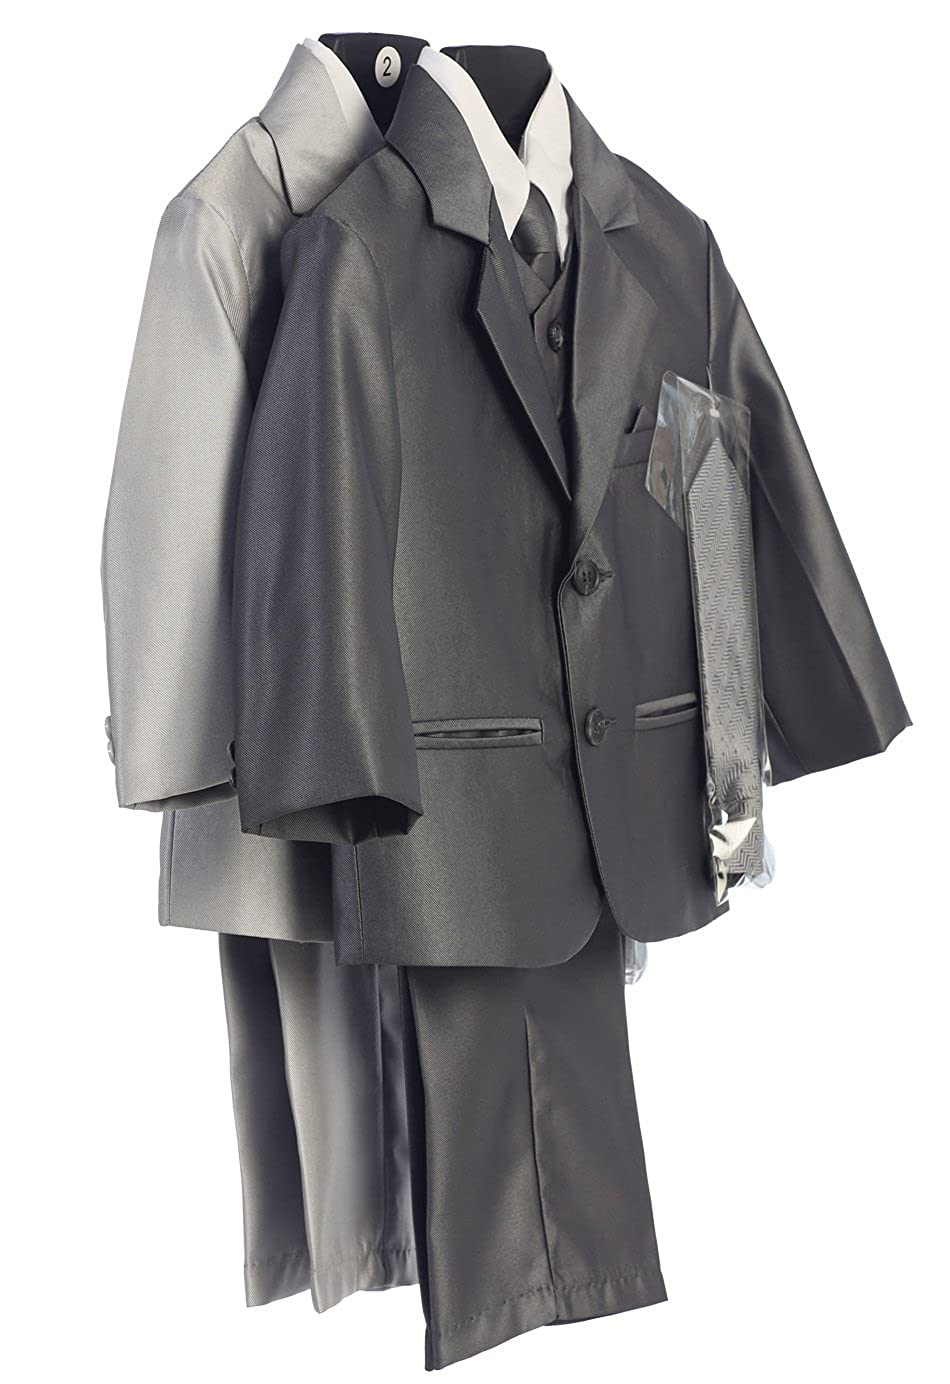 Boys 2-Button Metallic Suit with Vest and 2 Ties Pewter L 12-18 Months